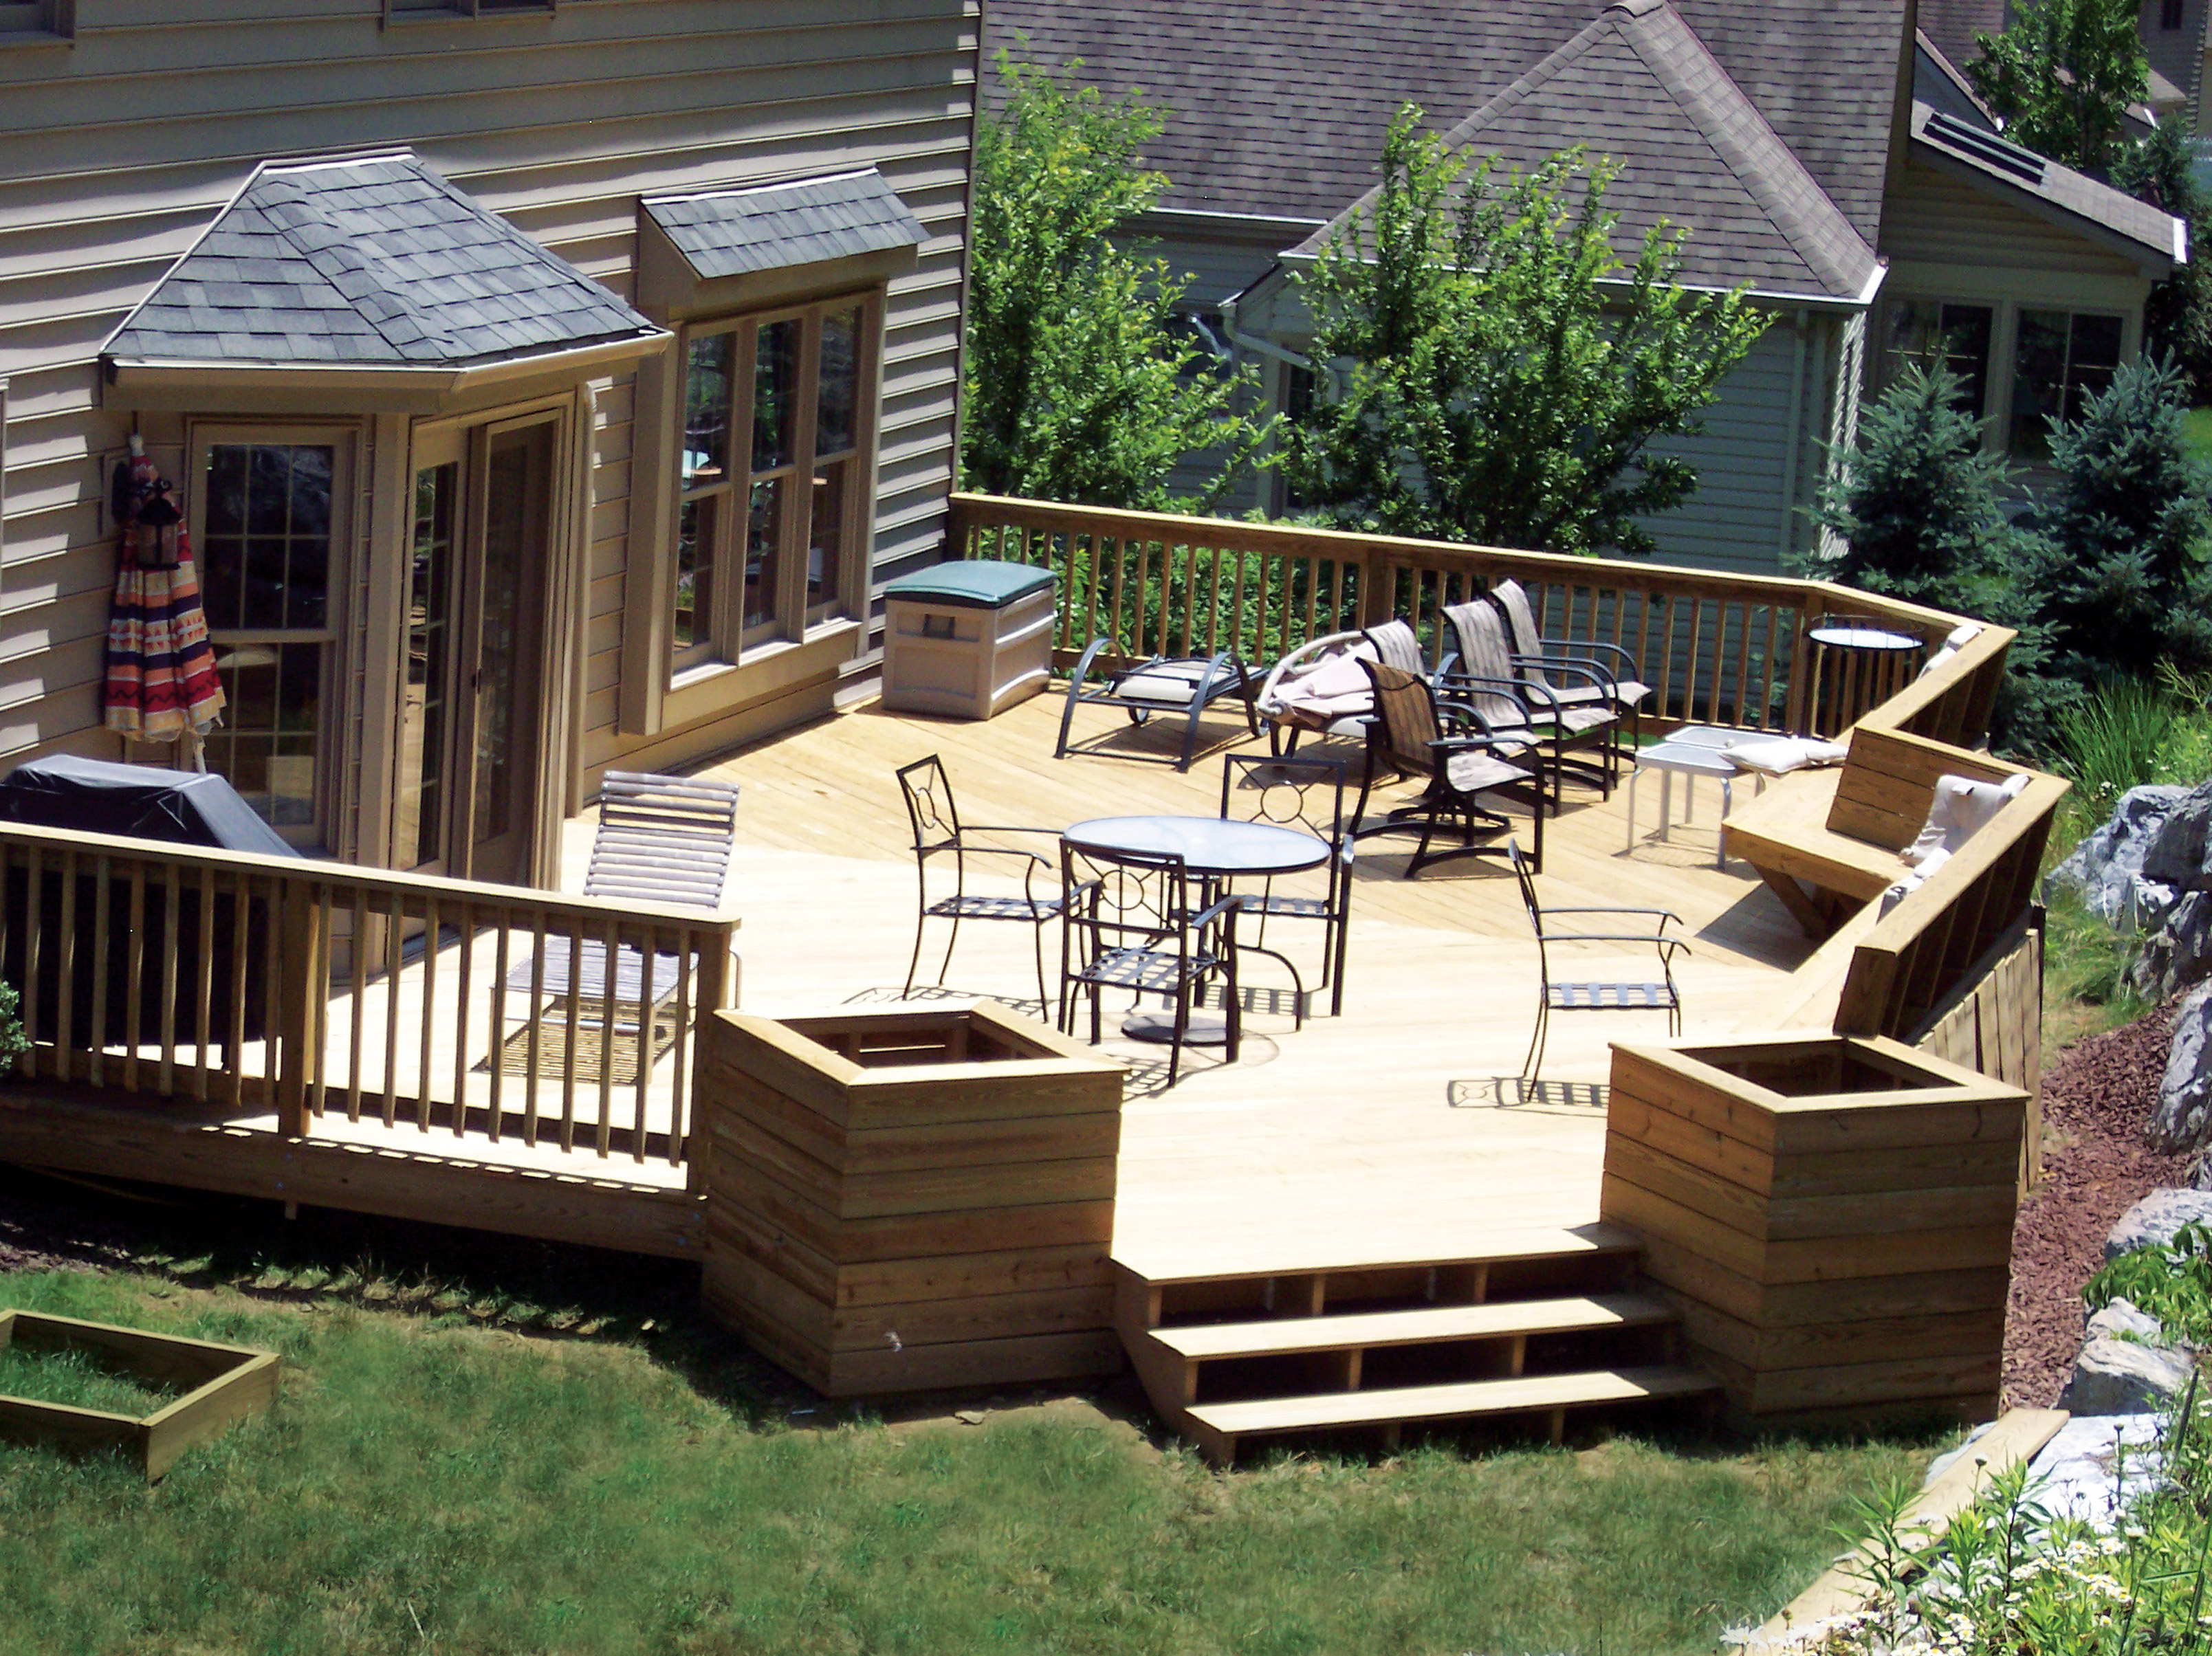 how to design a deck for the backyard image detail for deck ideas about patio designs - Home Deck Design